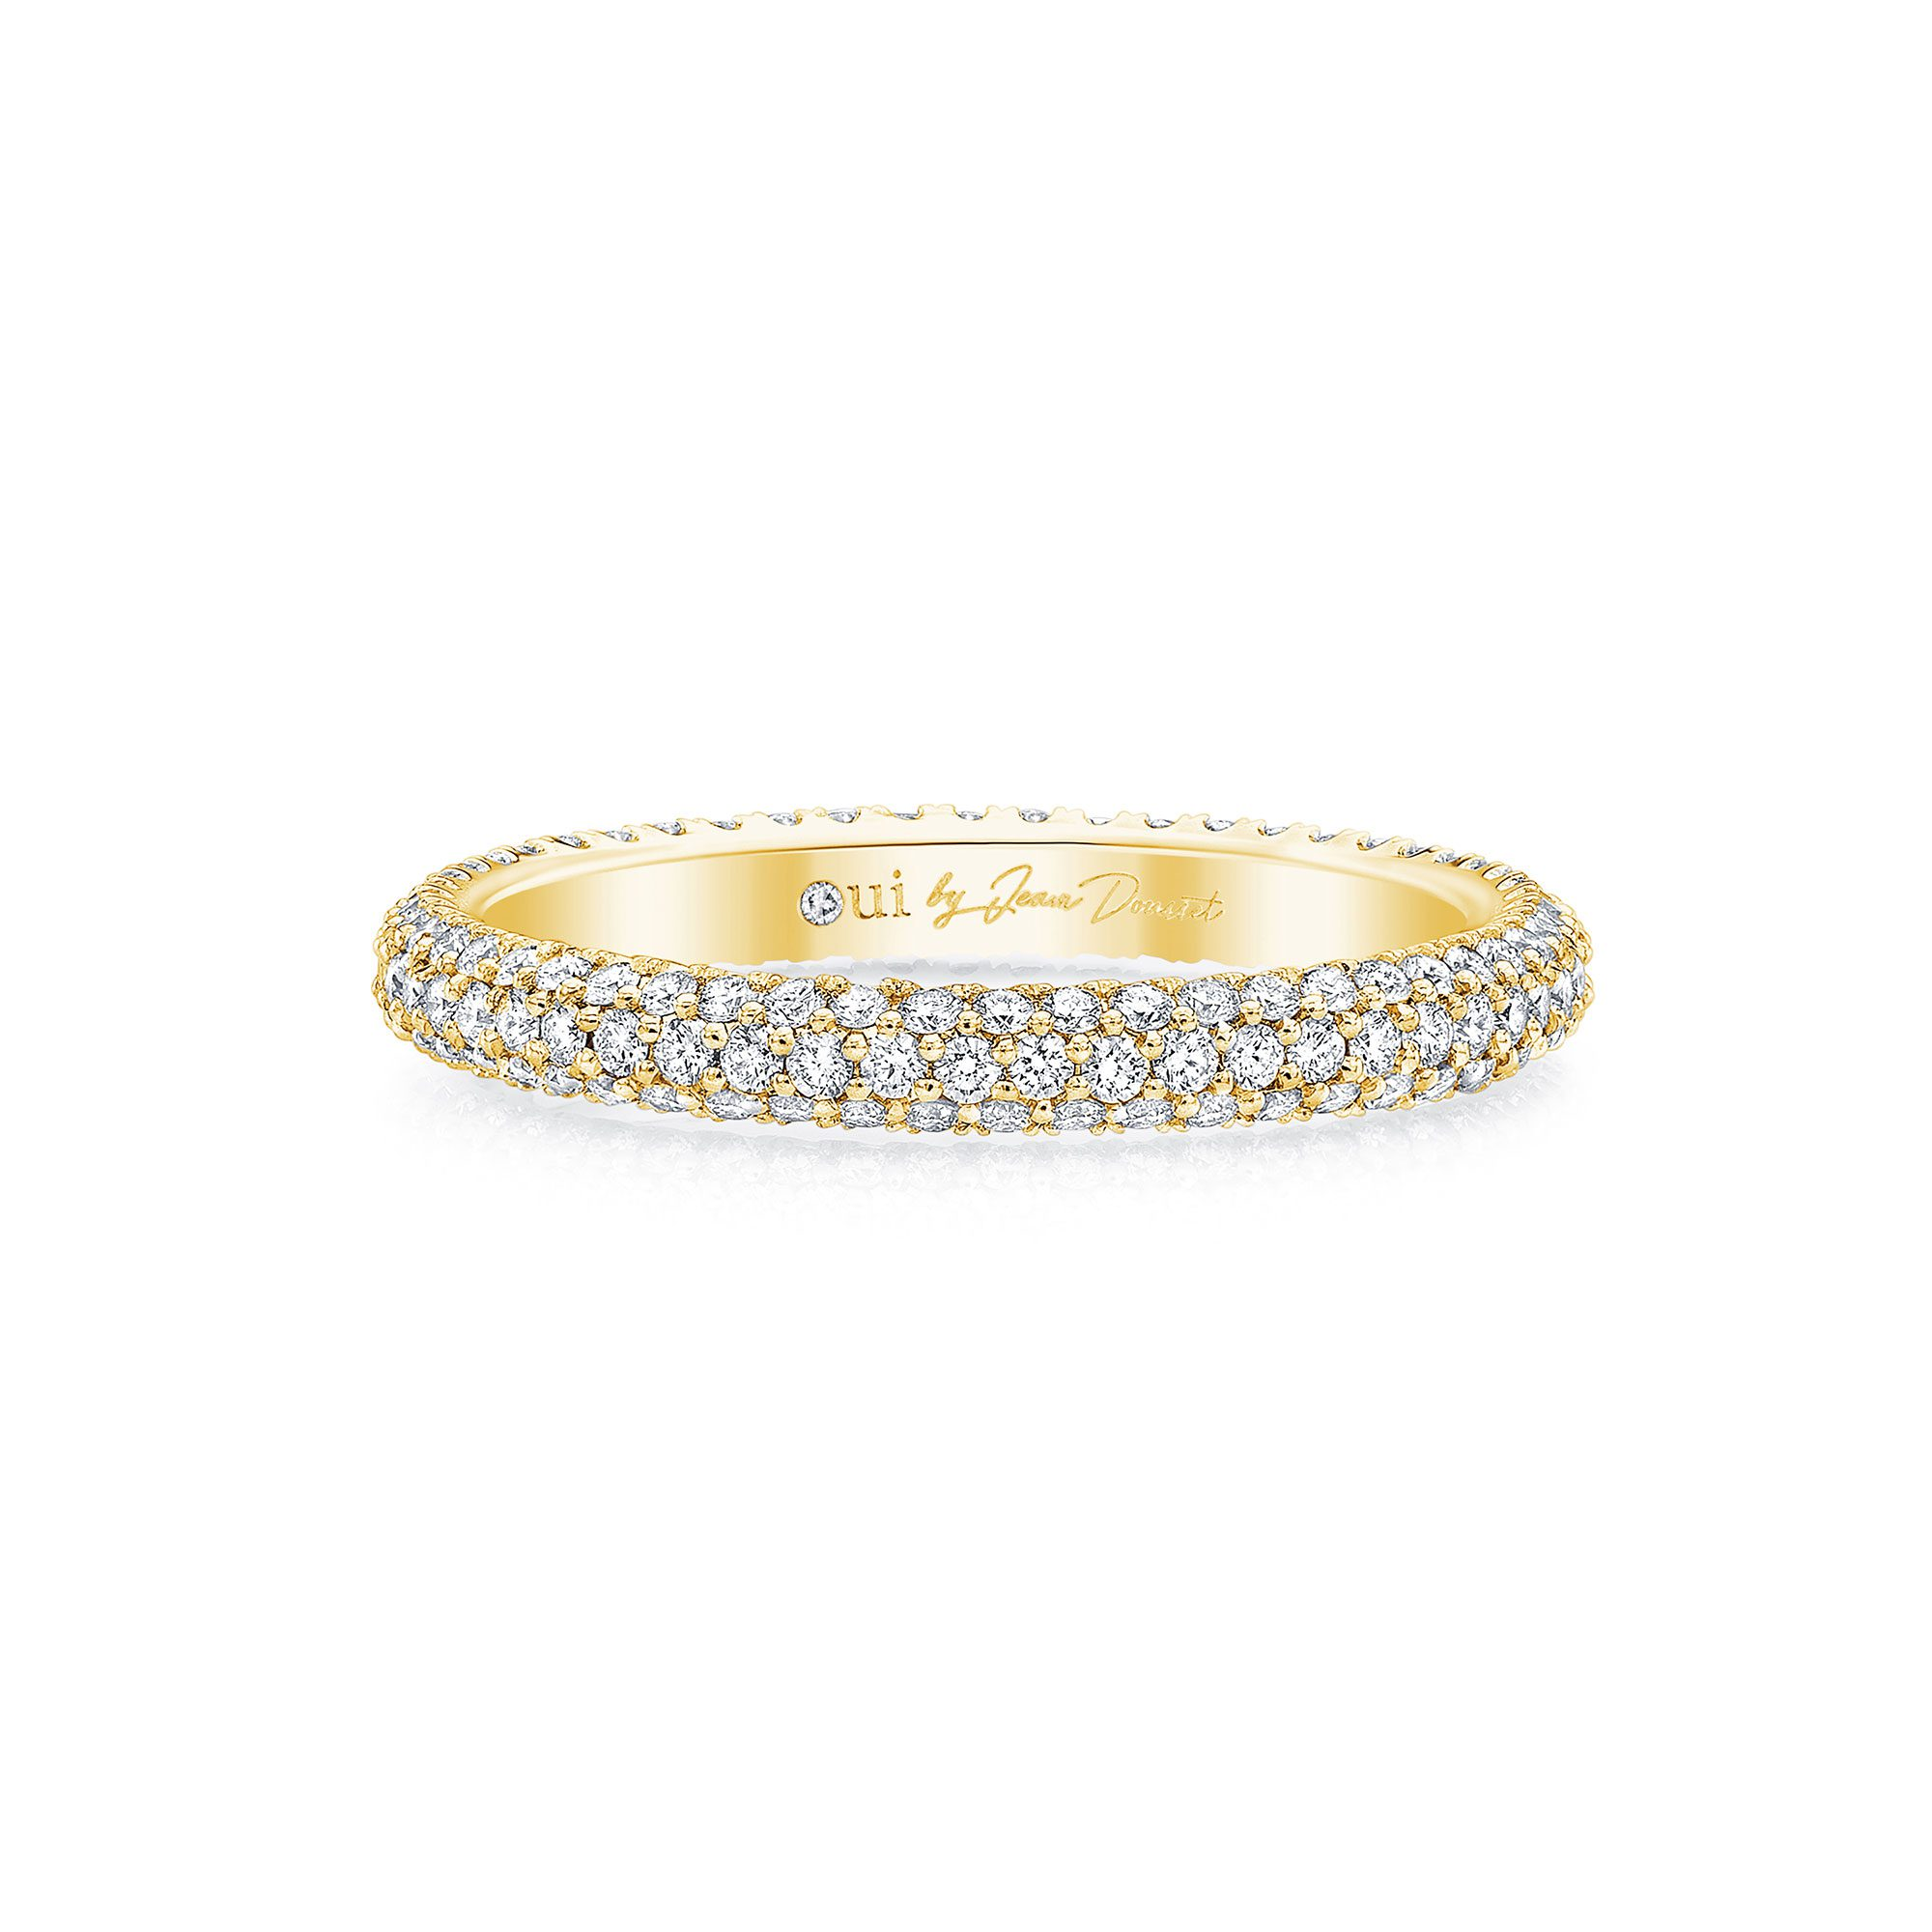 Jacqueline Eternity Band 18k Yellow Gold Front View by Oui by Jean Dousset